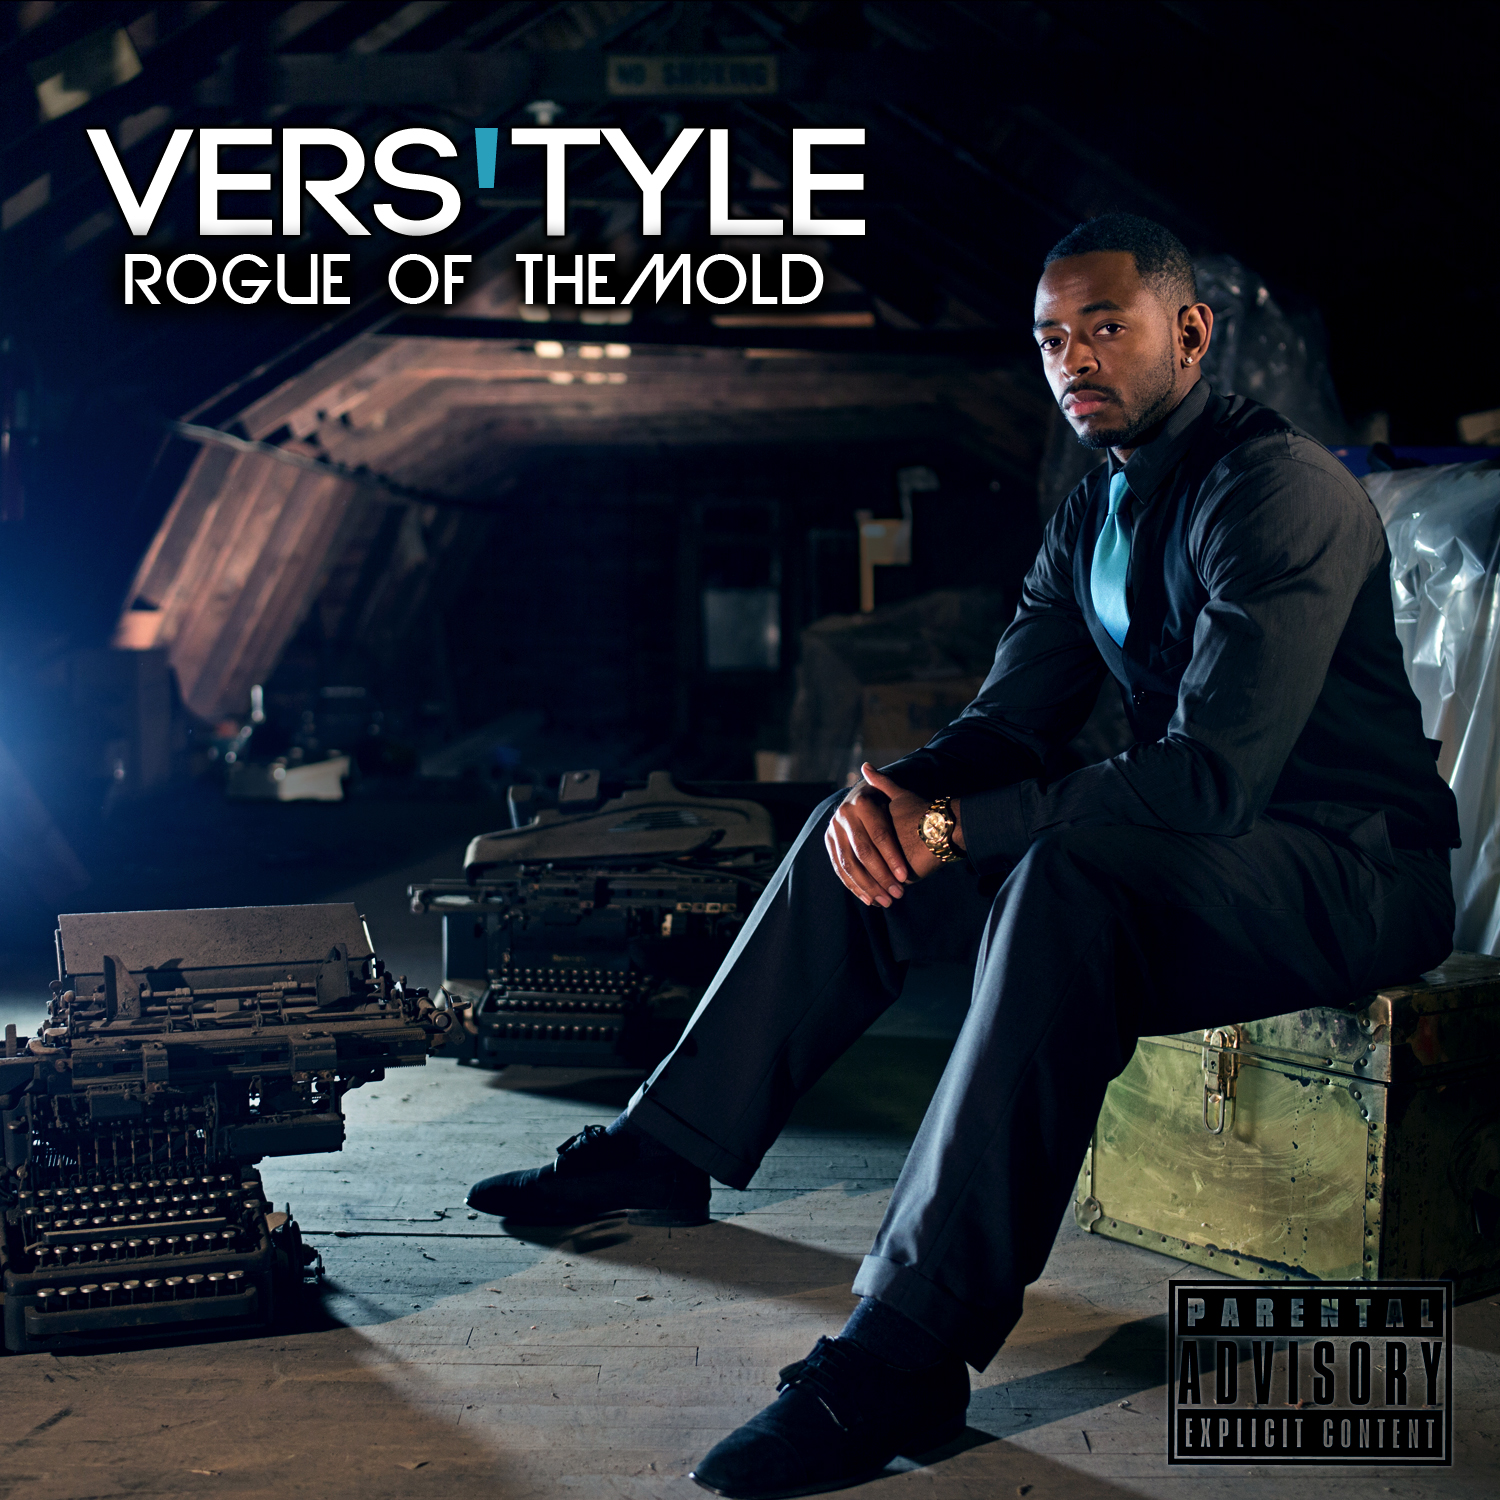 Vers'tyle – Rogue Of The Mold